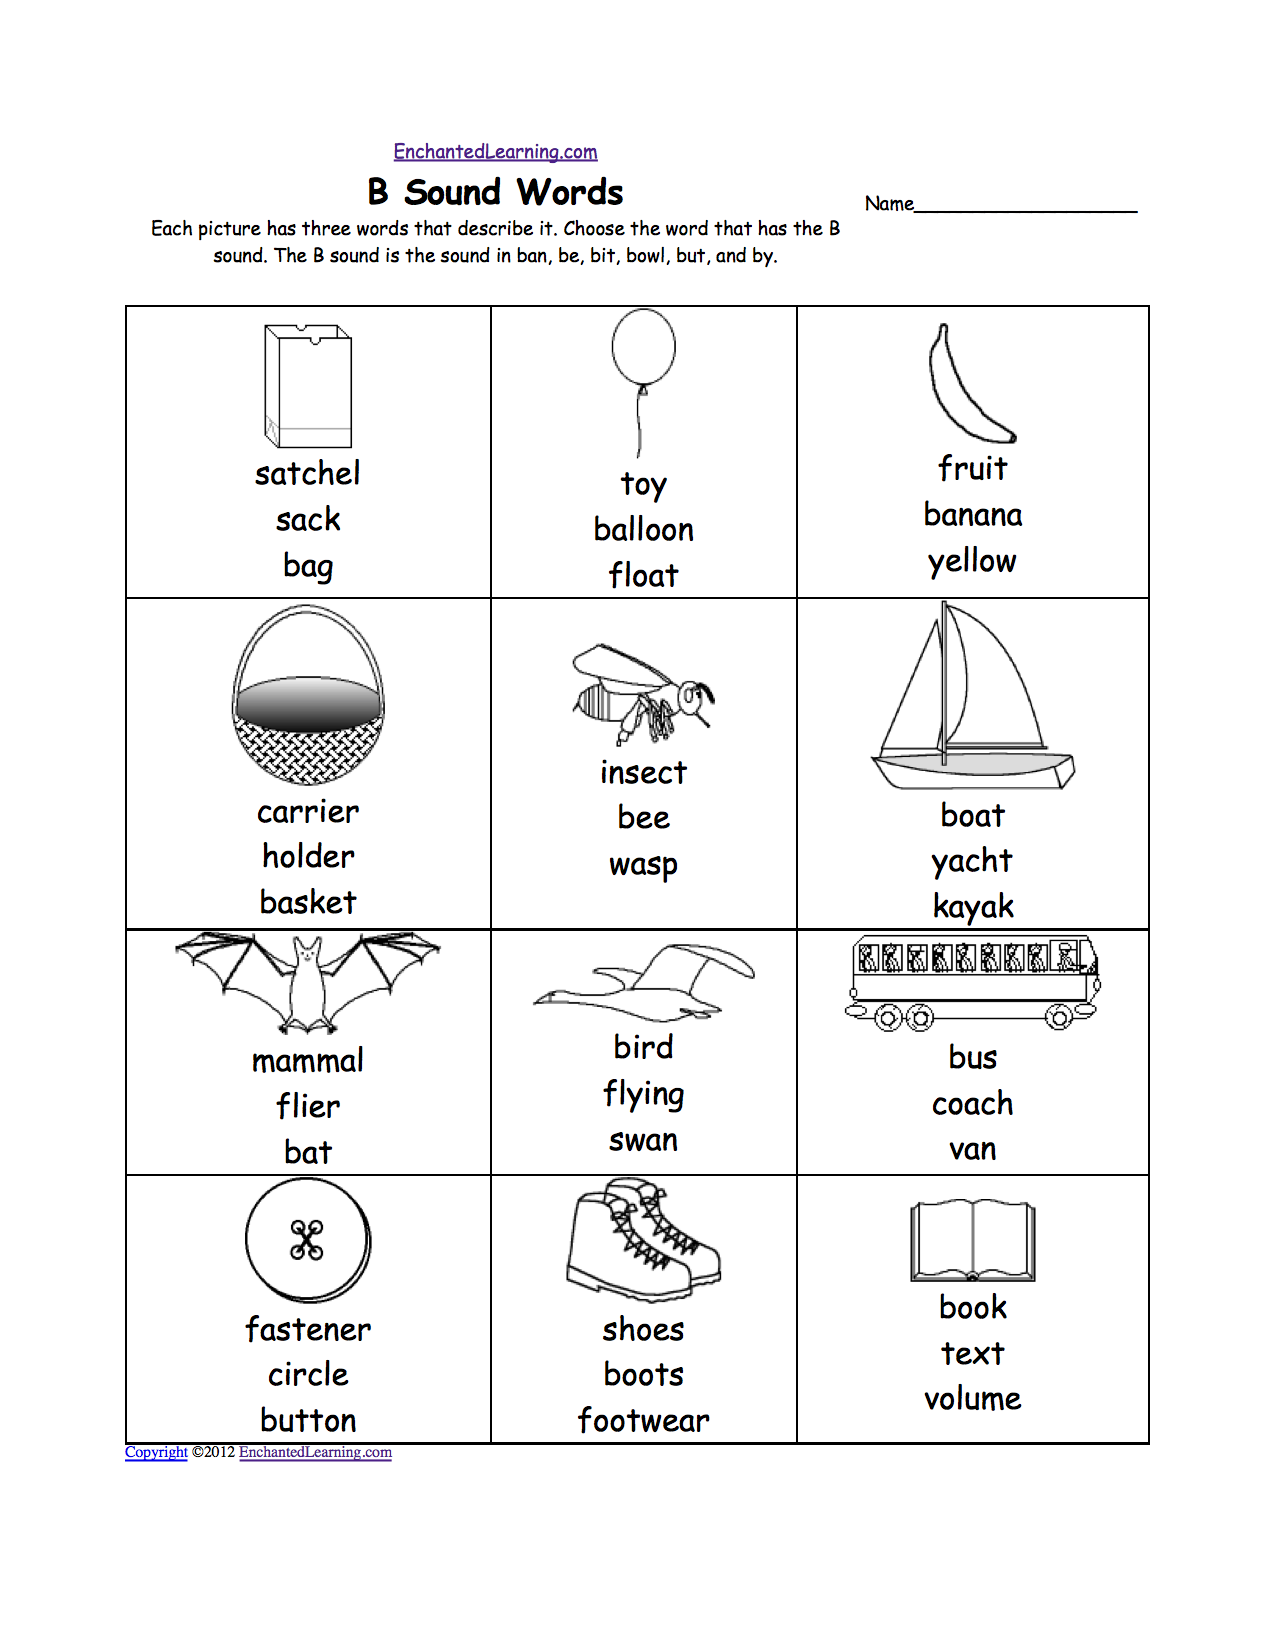 Weirdmailus  Scenic Phonics Worksheets Multiple Choice Worksheets To Print  With Inspiring Quotbquot Sound Phonics Worksheet Multiple Choice Each Picture Has Three Words That Describe It Choose The Word That Has A Quotbquot Sound The Quotbquot Sound Is The Sound  With Nice Printing Worksheets Kindergarten Also Grade  Spelling Worksheets In Addition Vedic Maths Worksheets And Adjective Worksheets For Grade  As Well As Listening Worksheets For Kids Additionally Year  Fractions Worksheets From Enchantedlearningcom With Weirdmailus  Inspiring Phonics Worksheets Multiple Choice Worksheets To Print  With Nice Quotbquot Sound Phonics Worksheet Multiple Choice Each Picture Has Three Words That Describe It Choose The Word That Has A Quotbquot Sound The Quotbquot Sound Is The Sound  And Scenic Printing Worksheets Kindergarten Also Grade  Spelling Worksheets In Addition Vedic Maths Worksheets From Enchantedlearningcom